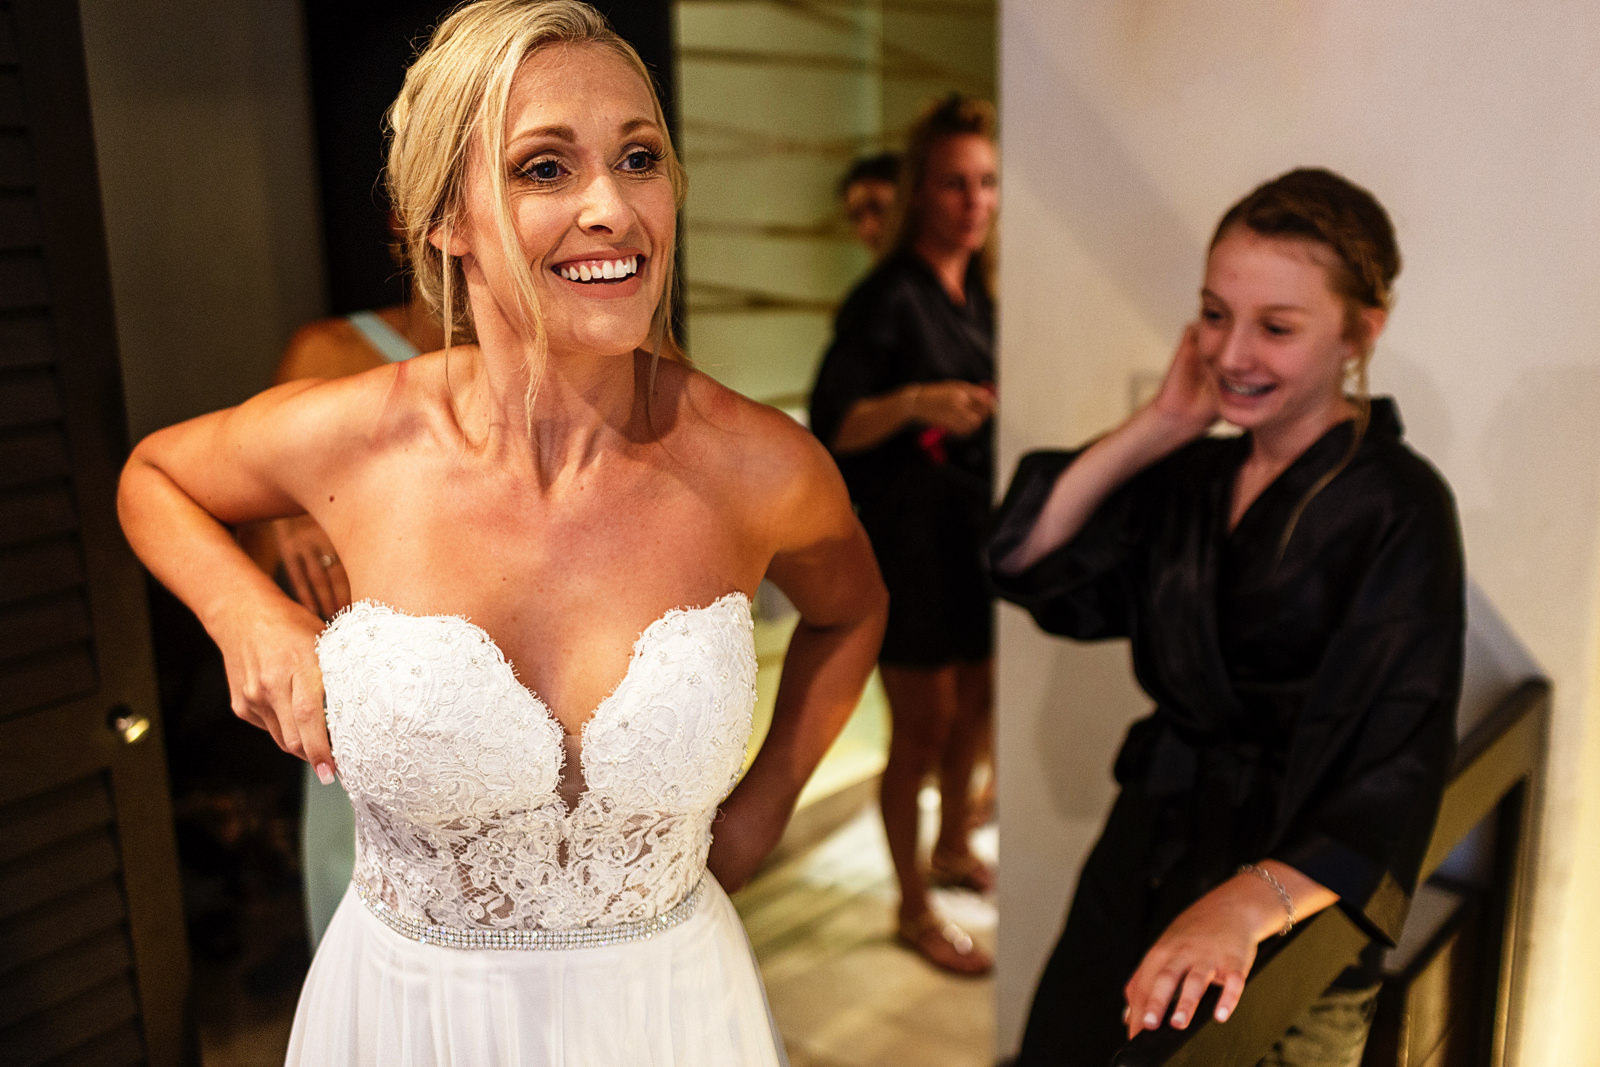 Bride getting into her dress, bridesmaids helping her